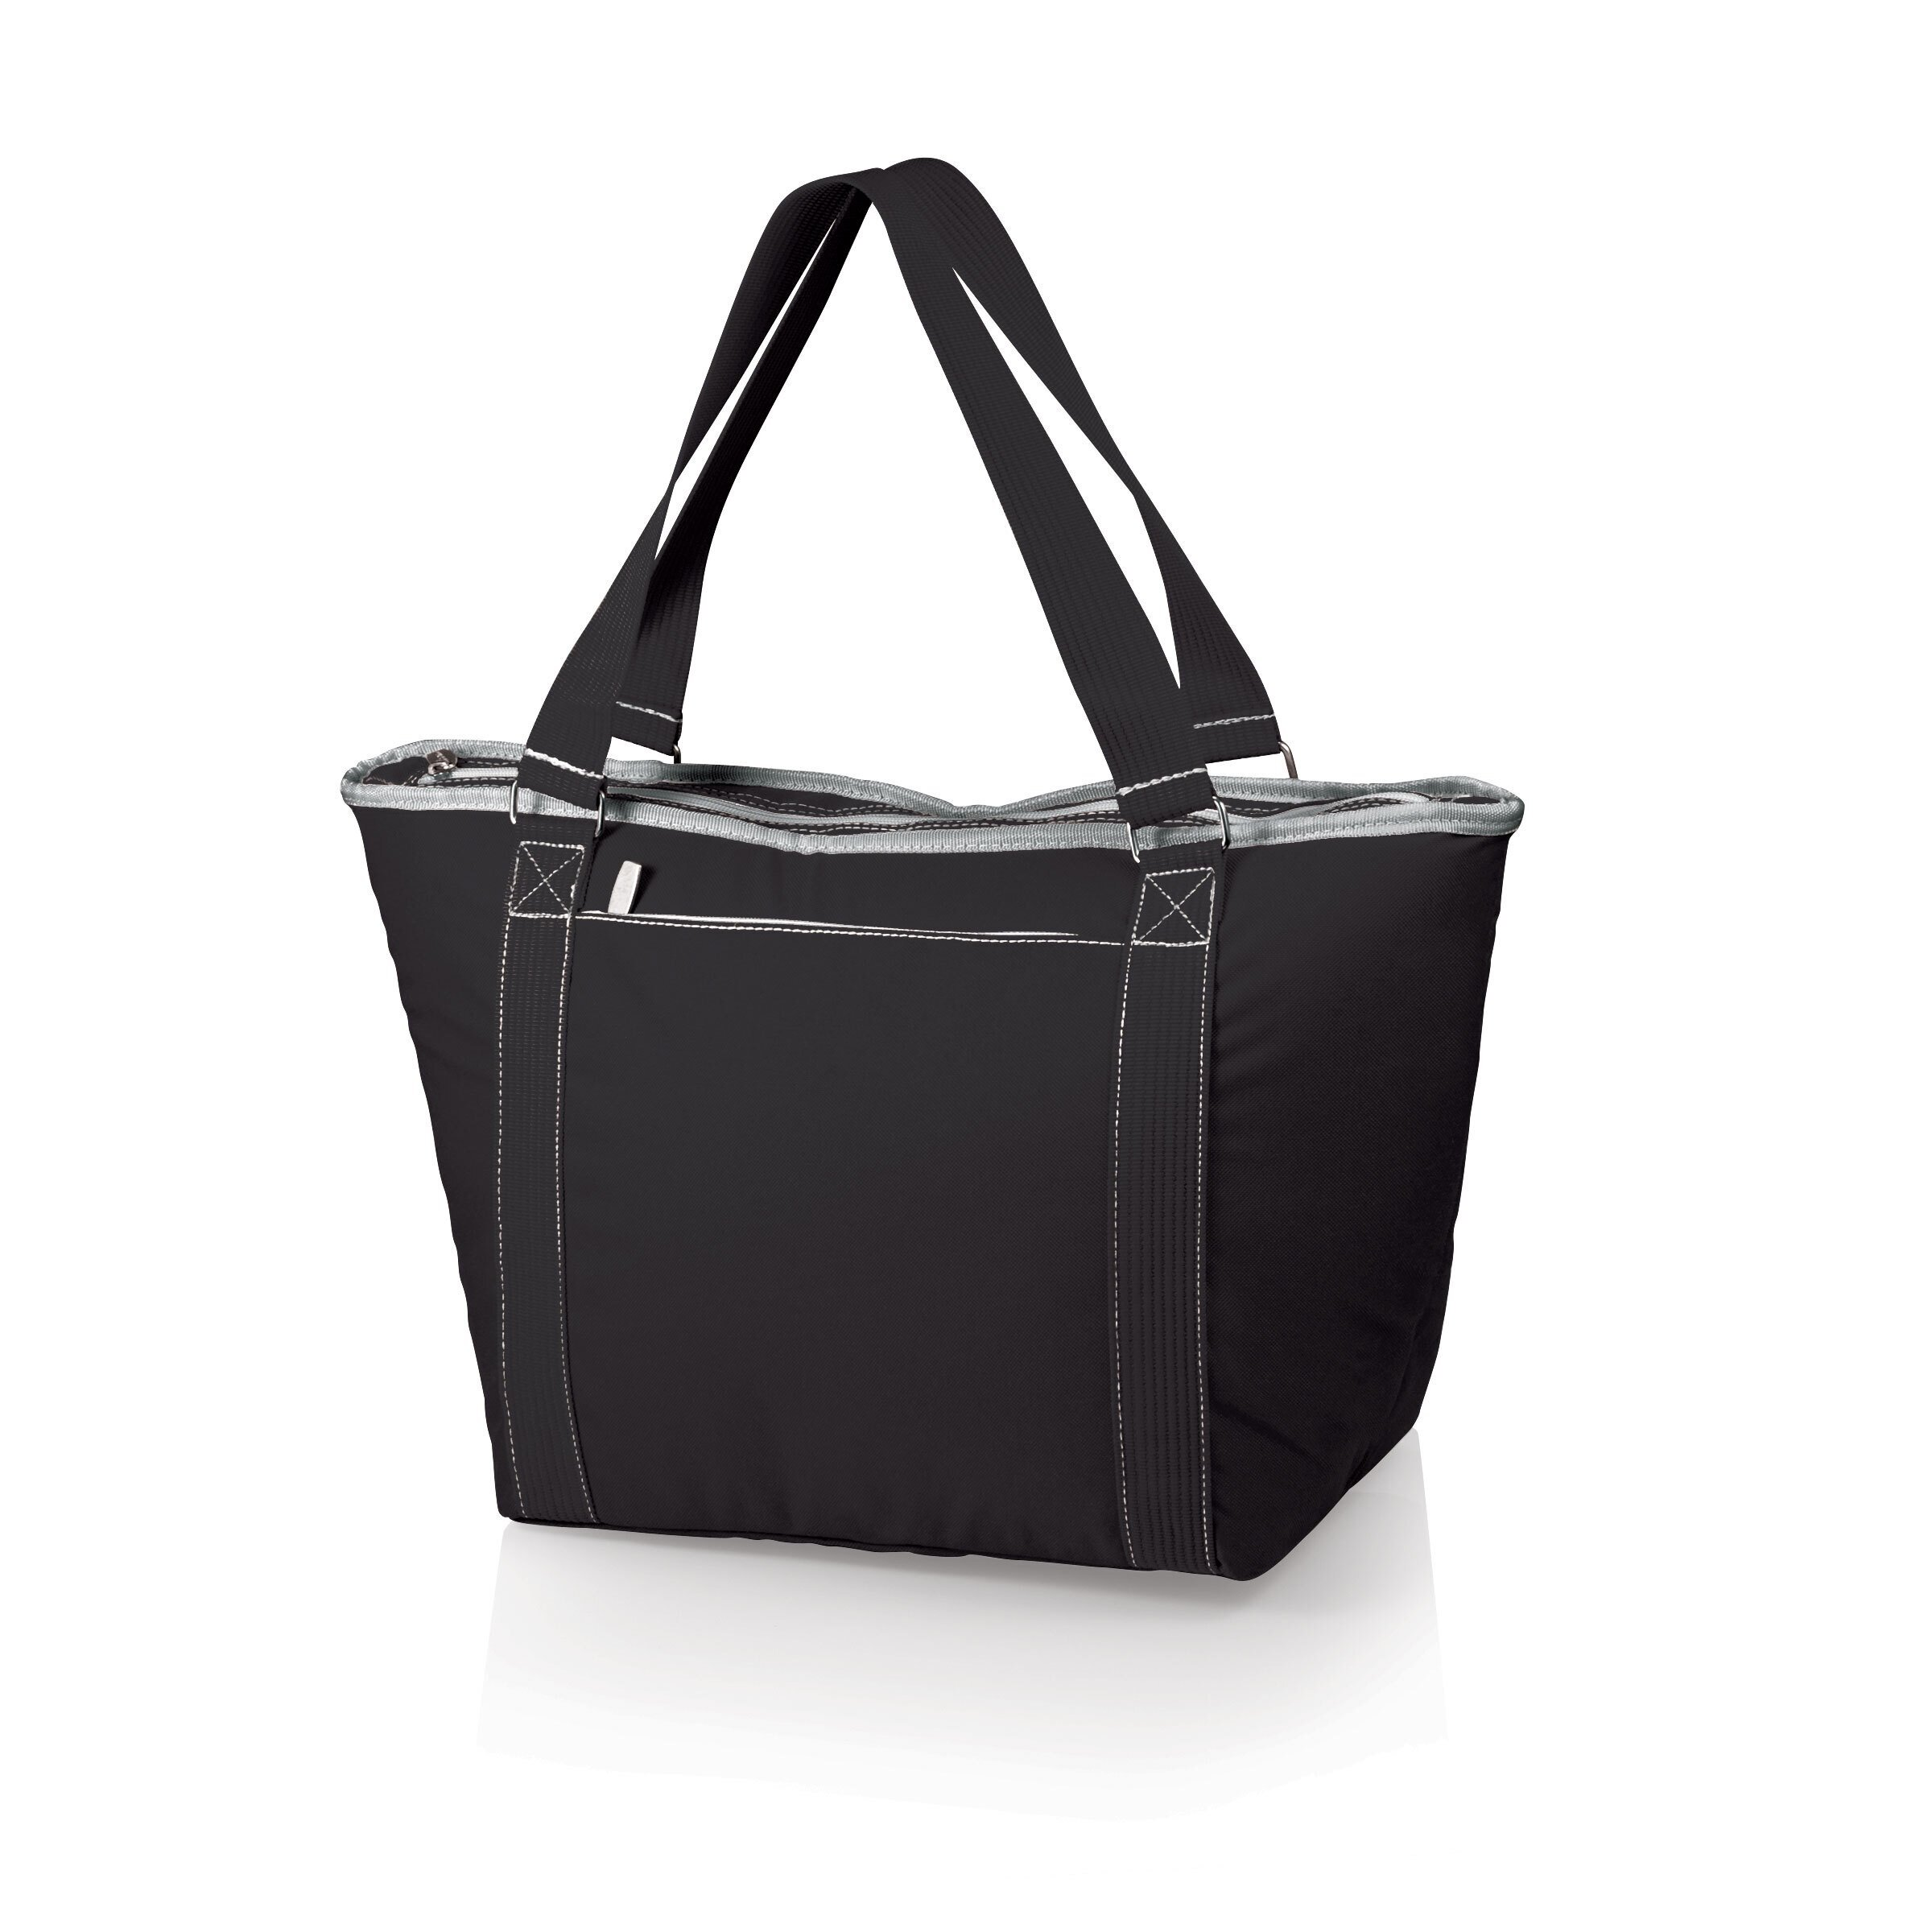 Topanga Insulated Cooler Tote - Solid Colors